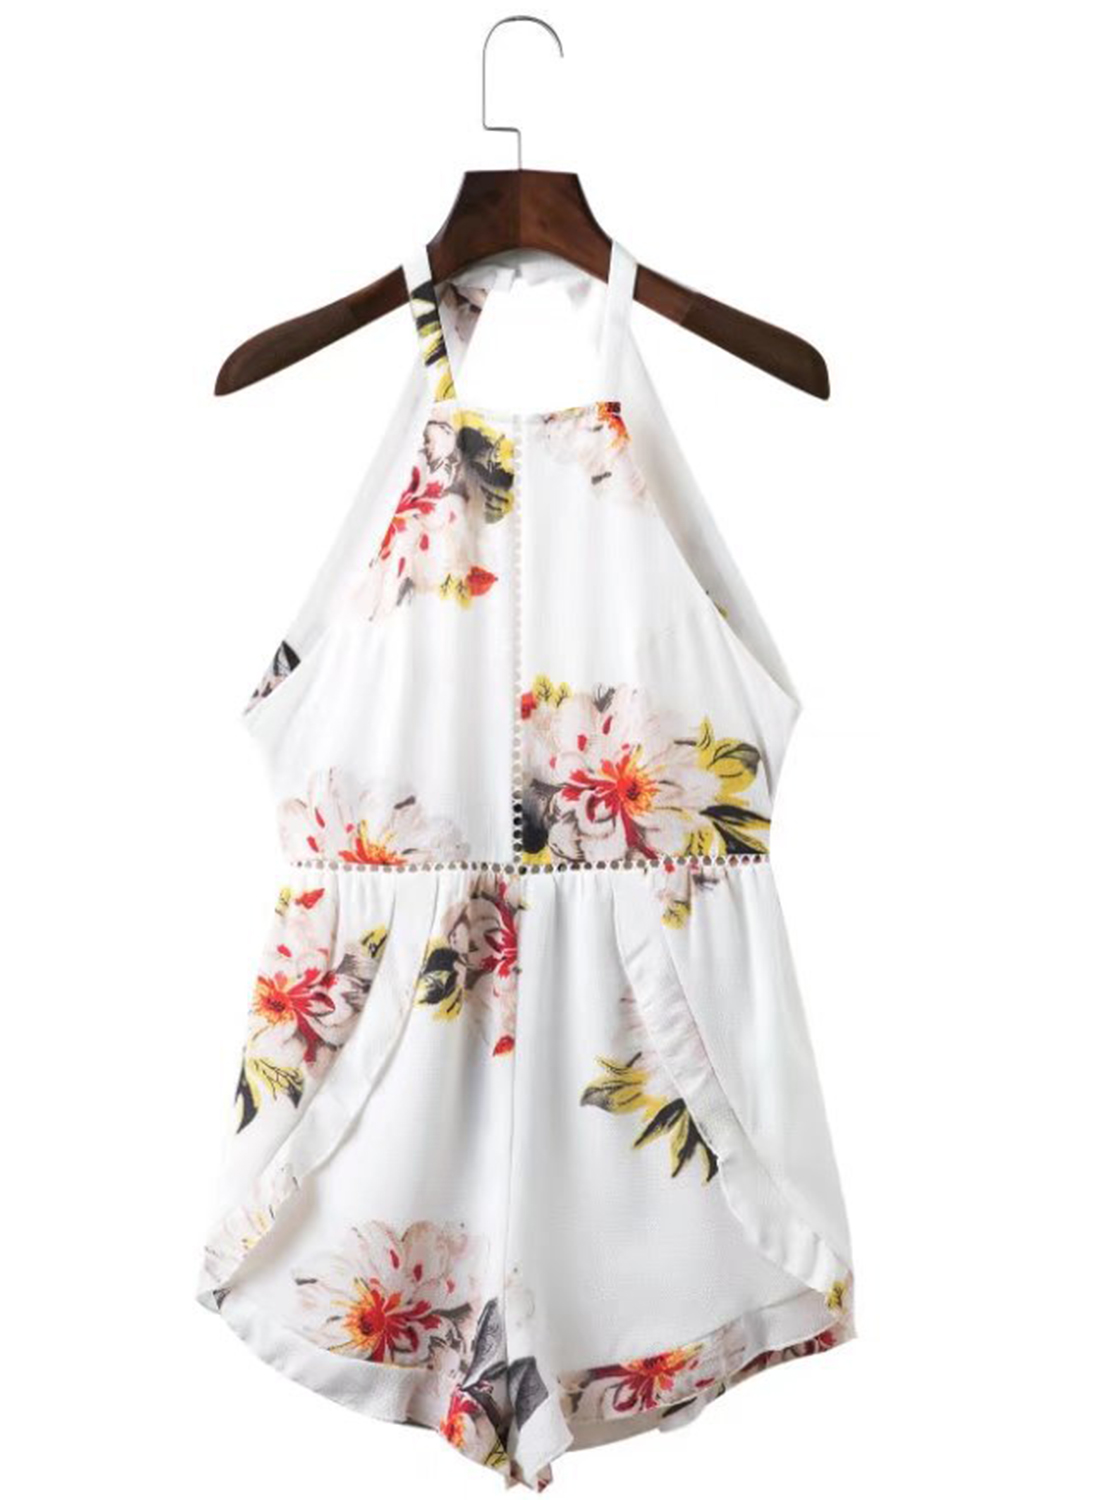 d268db4847b Halter Neck Backless Sleeveless Floral Printed Casual Romper. USD 27.49  USD 40.69 (32% OFF)